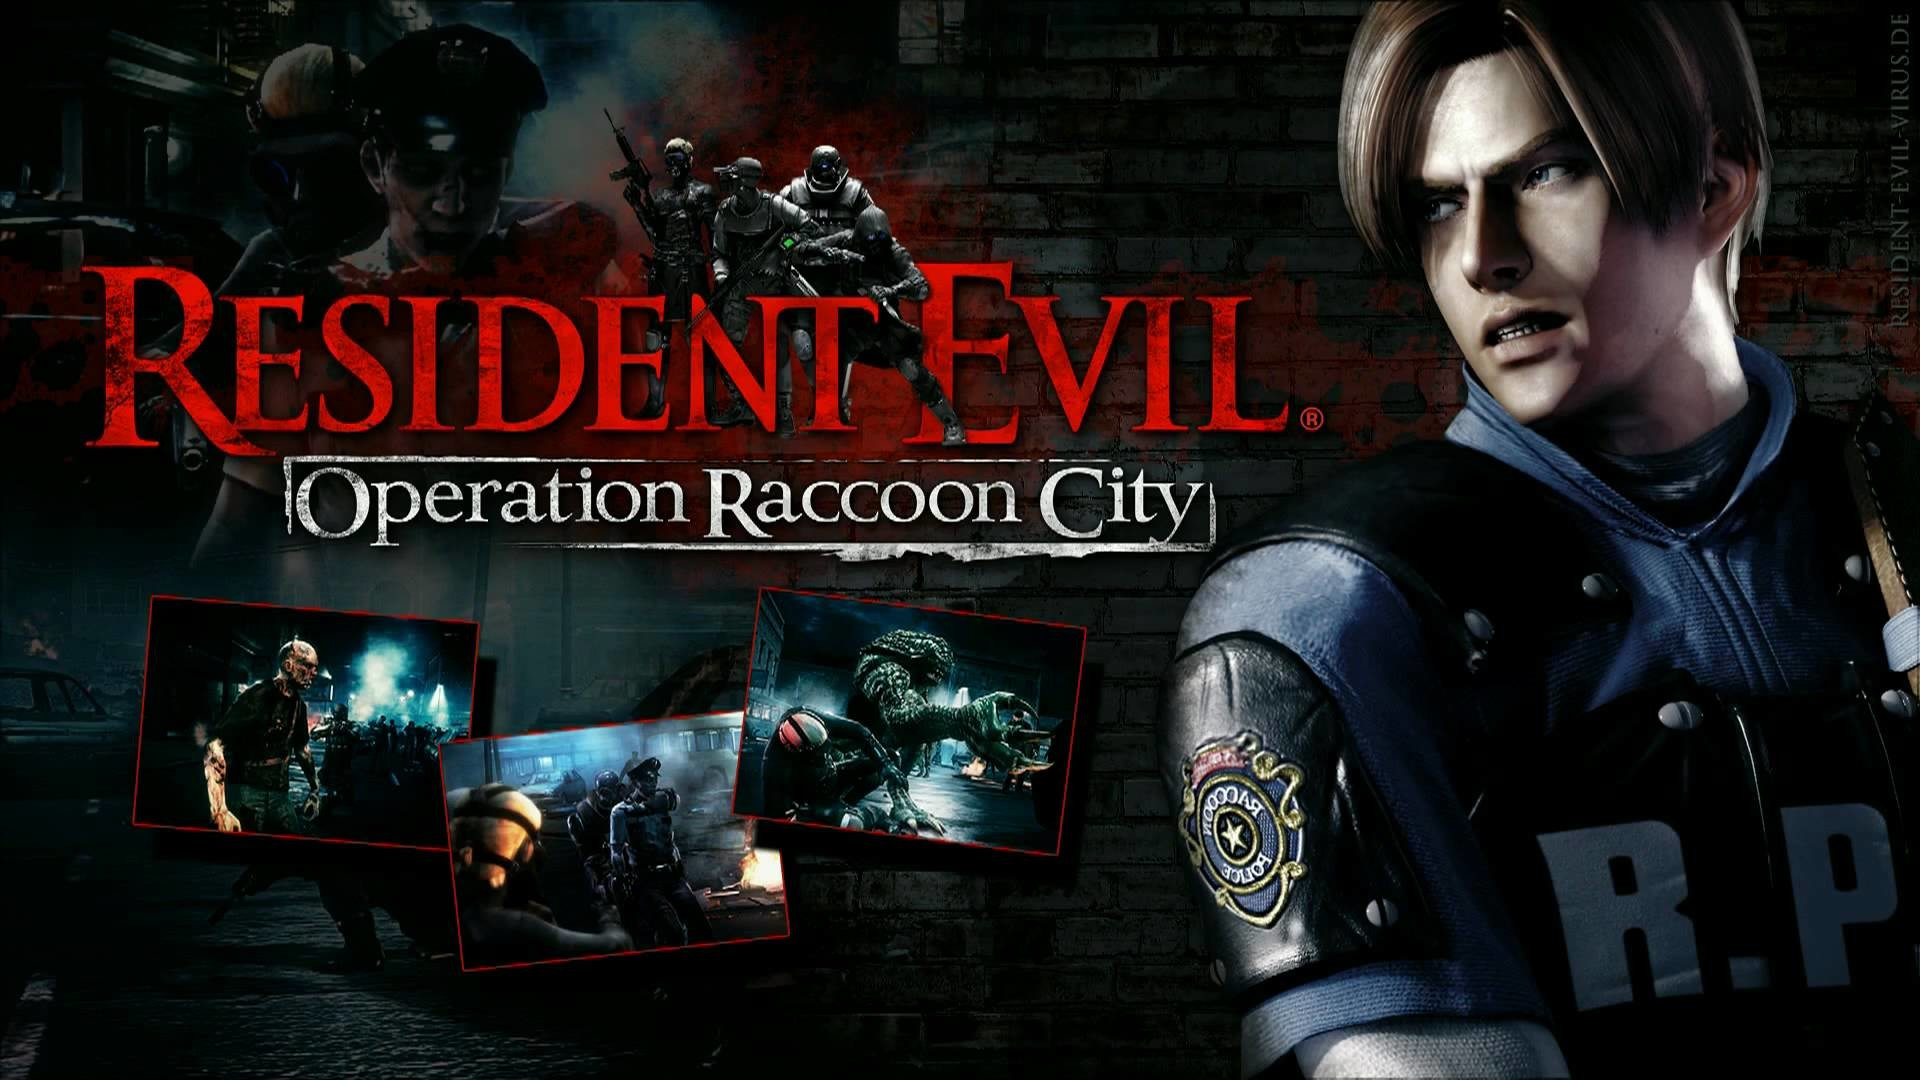 1920x1080 Resident Evil: Operation Raccoon City - HD Wallpaper 01 (REV EXCLUSIVE)